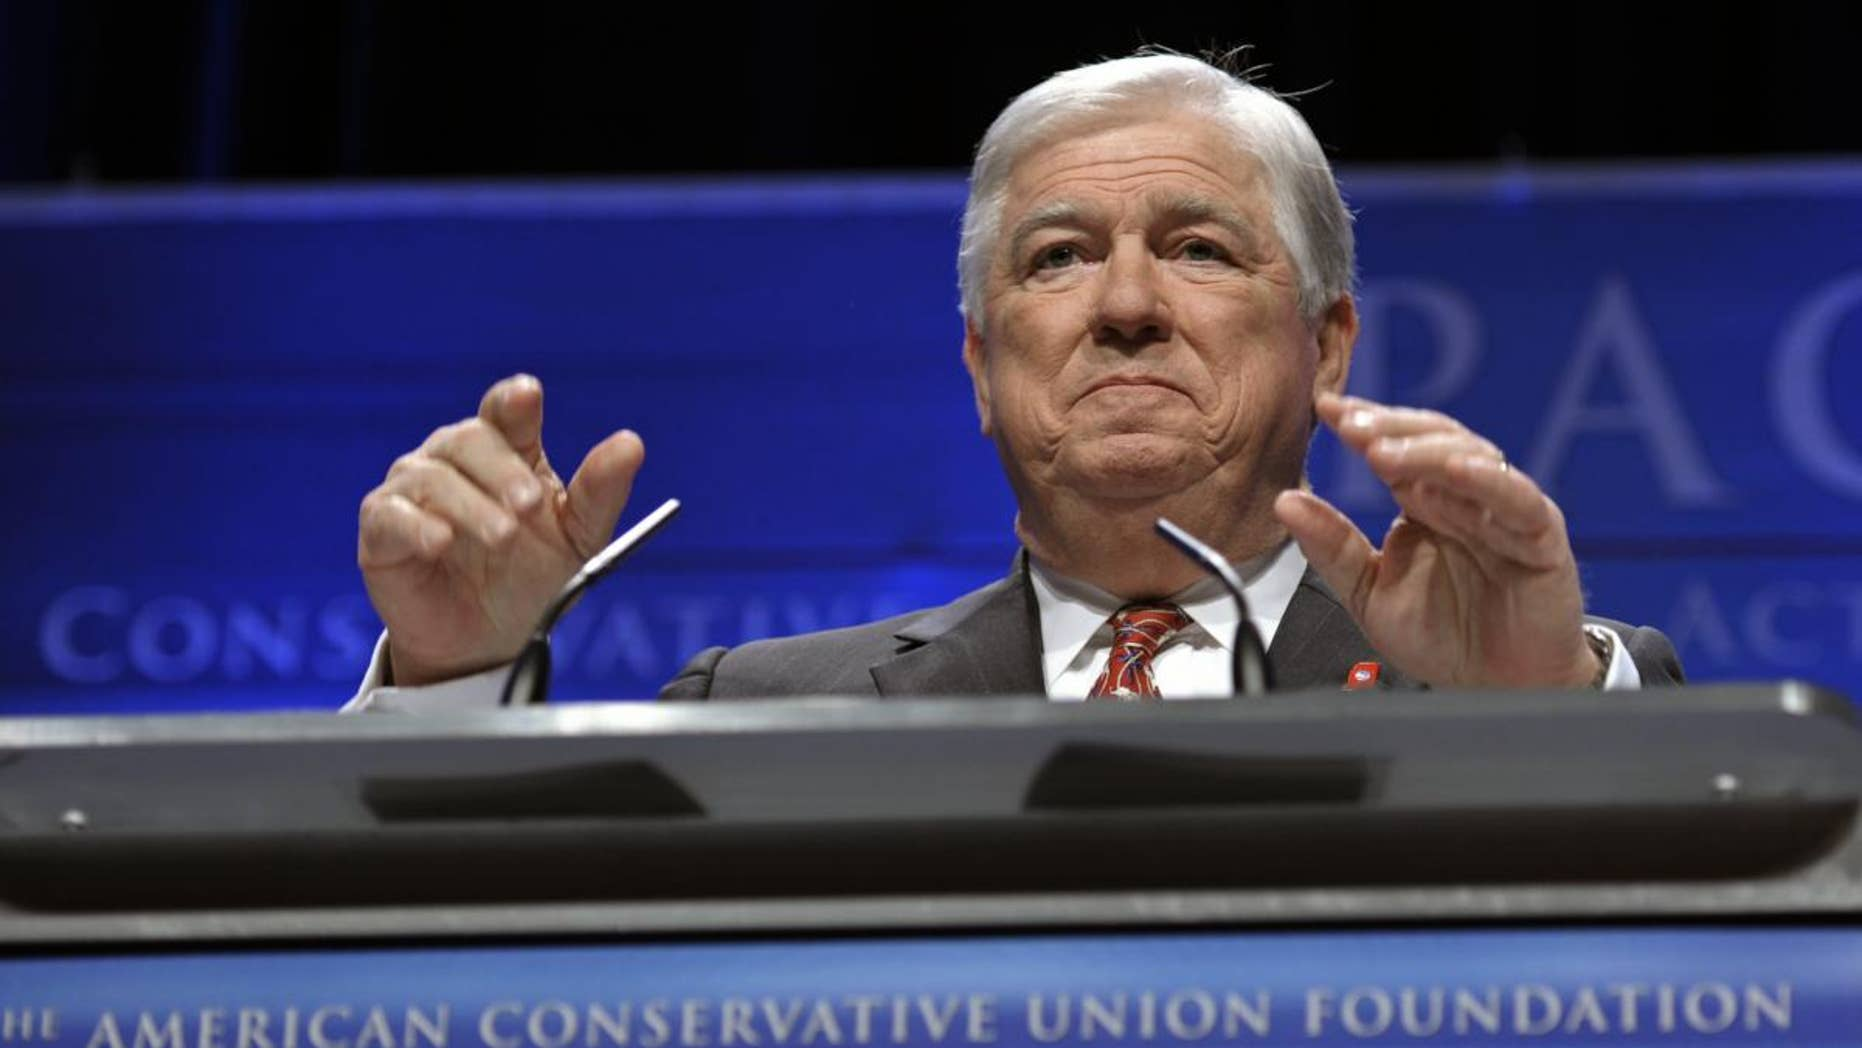 Mississippi Gov. Haley Barbour speaks at the Conservative Political Action Conference (CPAC) in Washington, Saturday, Feb. 12, 2011. (AP Photo/Cliff Owen)